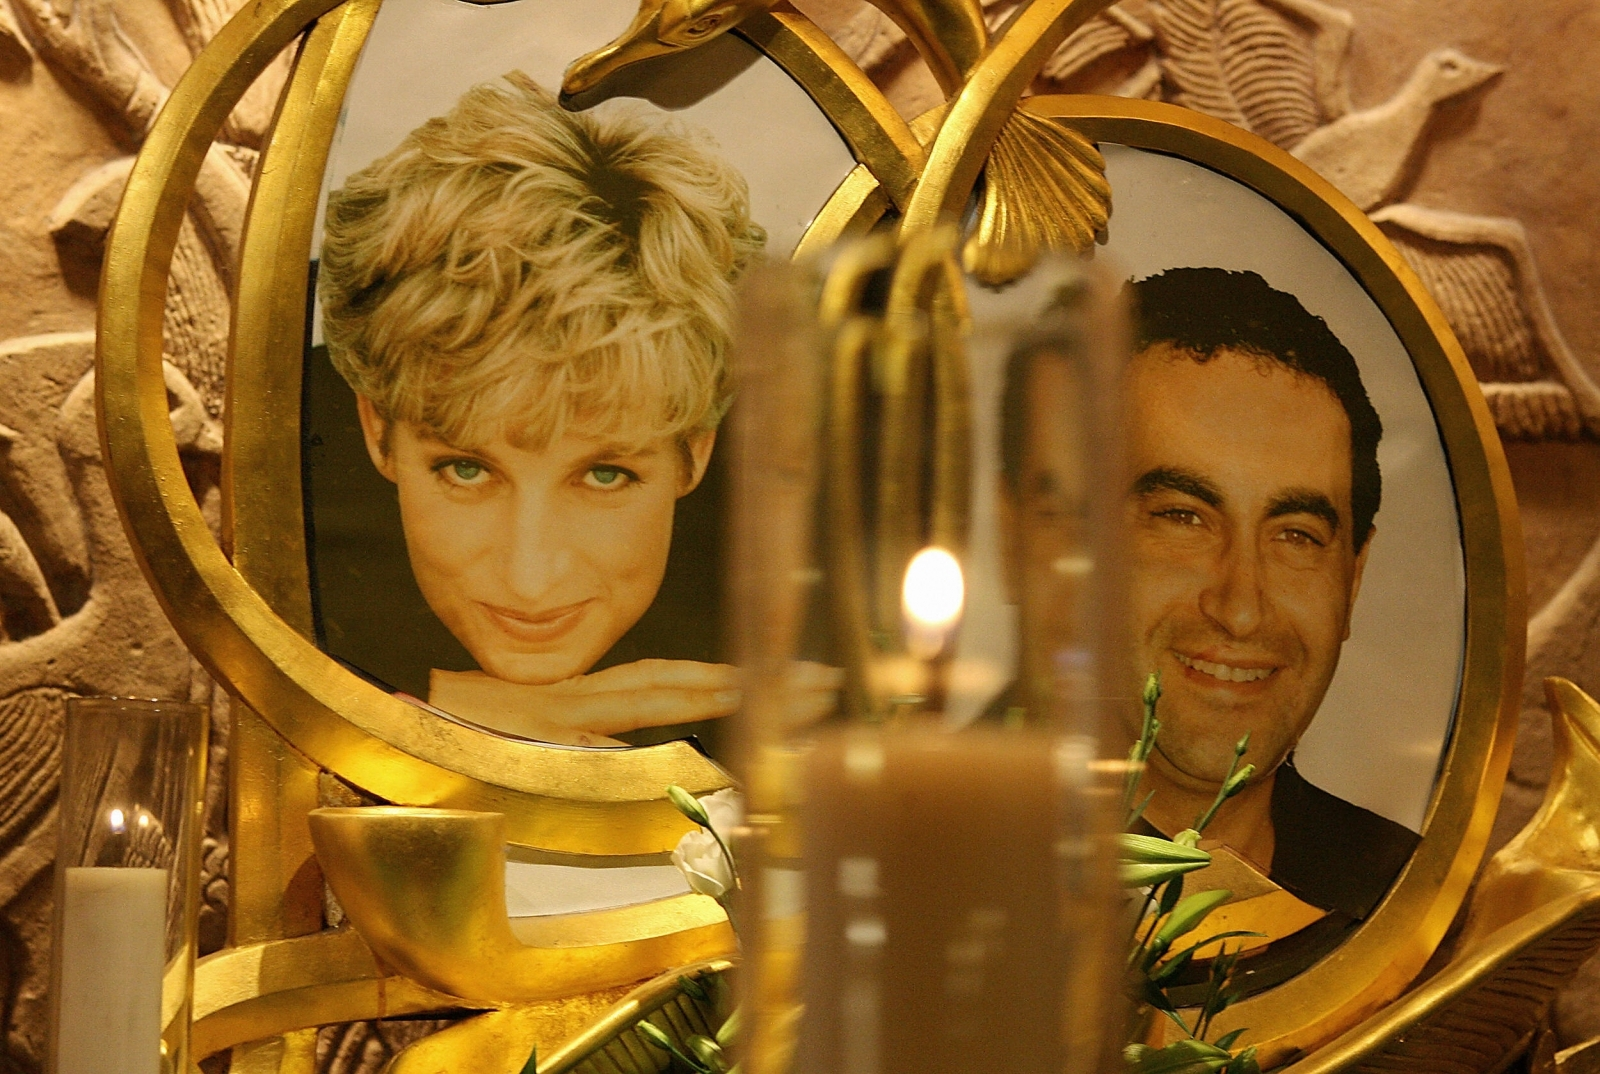 Diana, Princess of Wales and Dodi al-Fayed